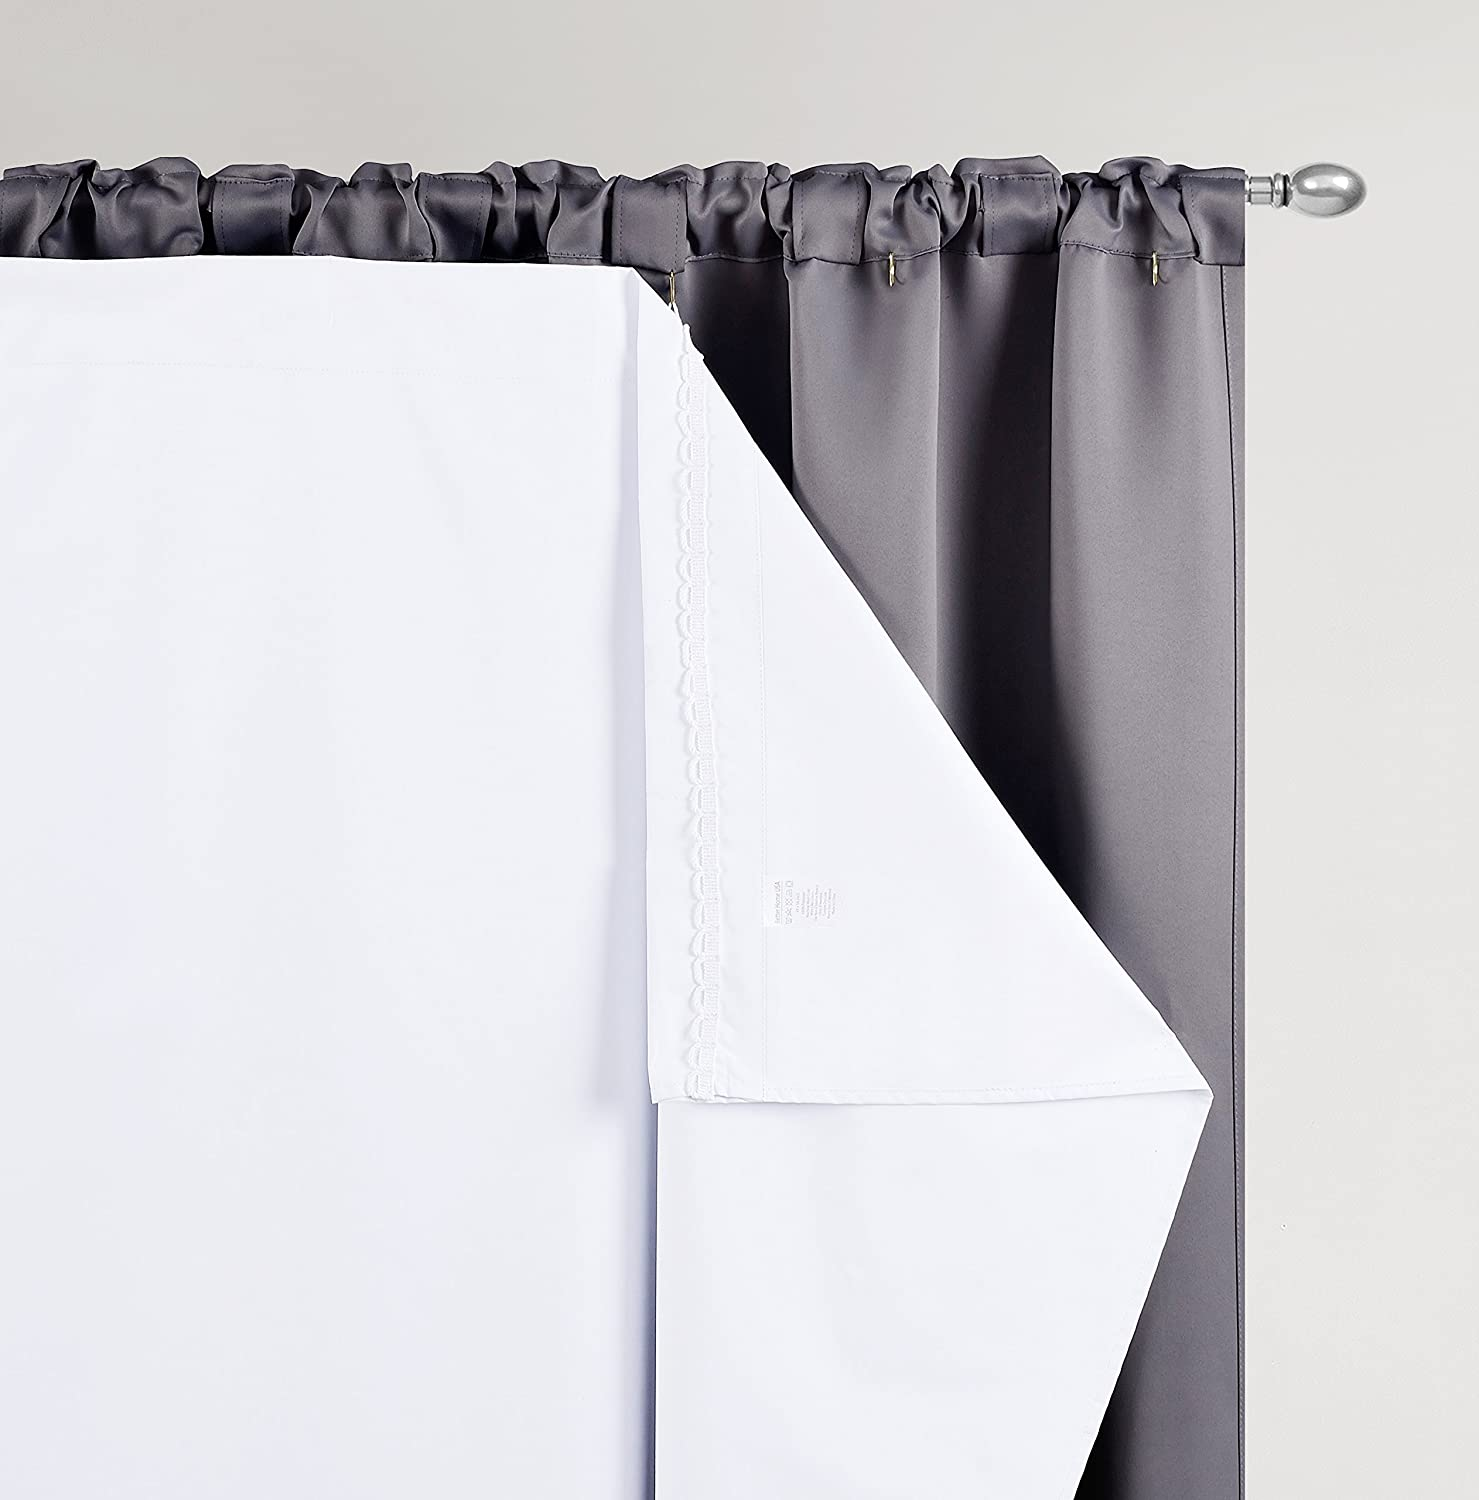 48W by 101L Inches Hooks Included One Panel BETTER HOME USA BHU Thermal Insulated Blackout Curtain Liner for 108 inch curtains-Blackout Thermal Liner